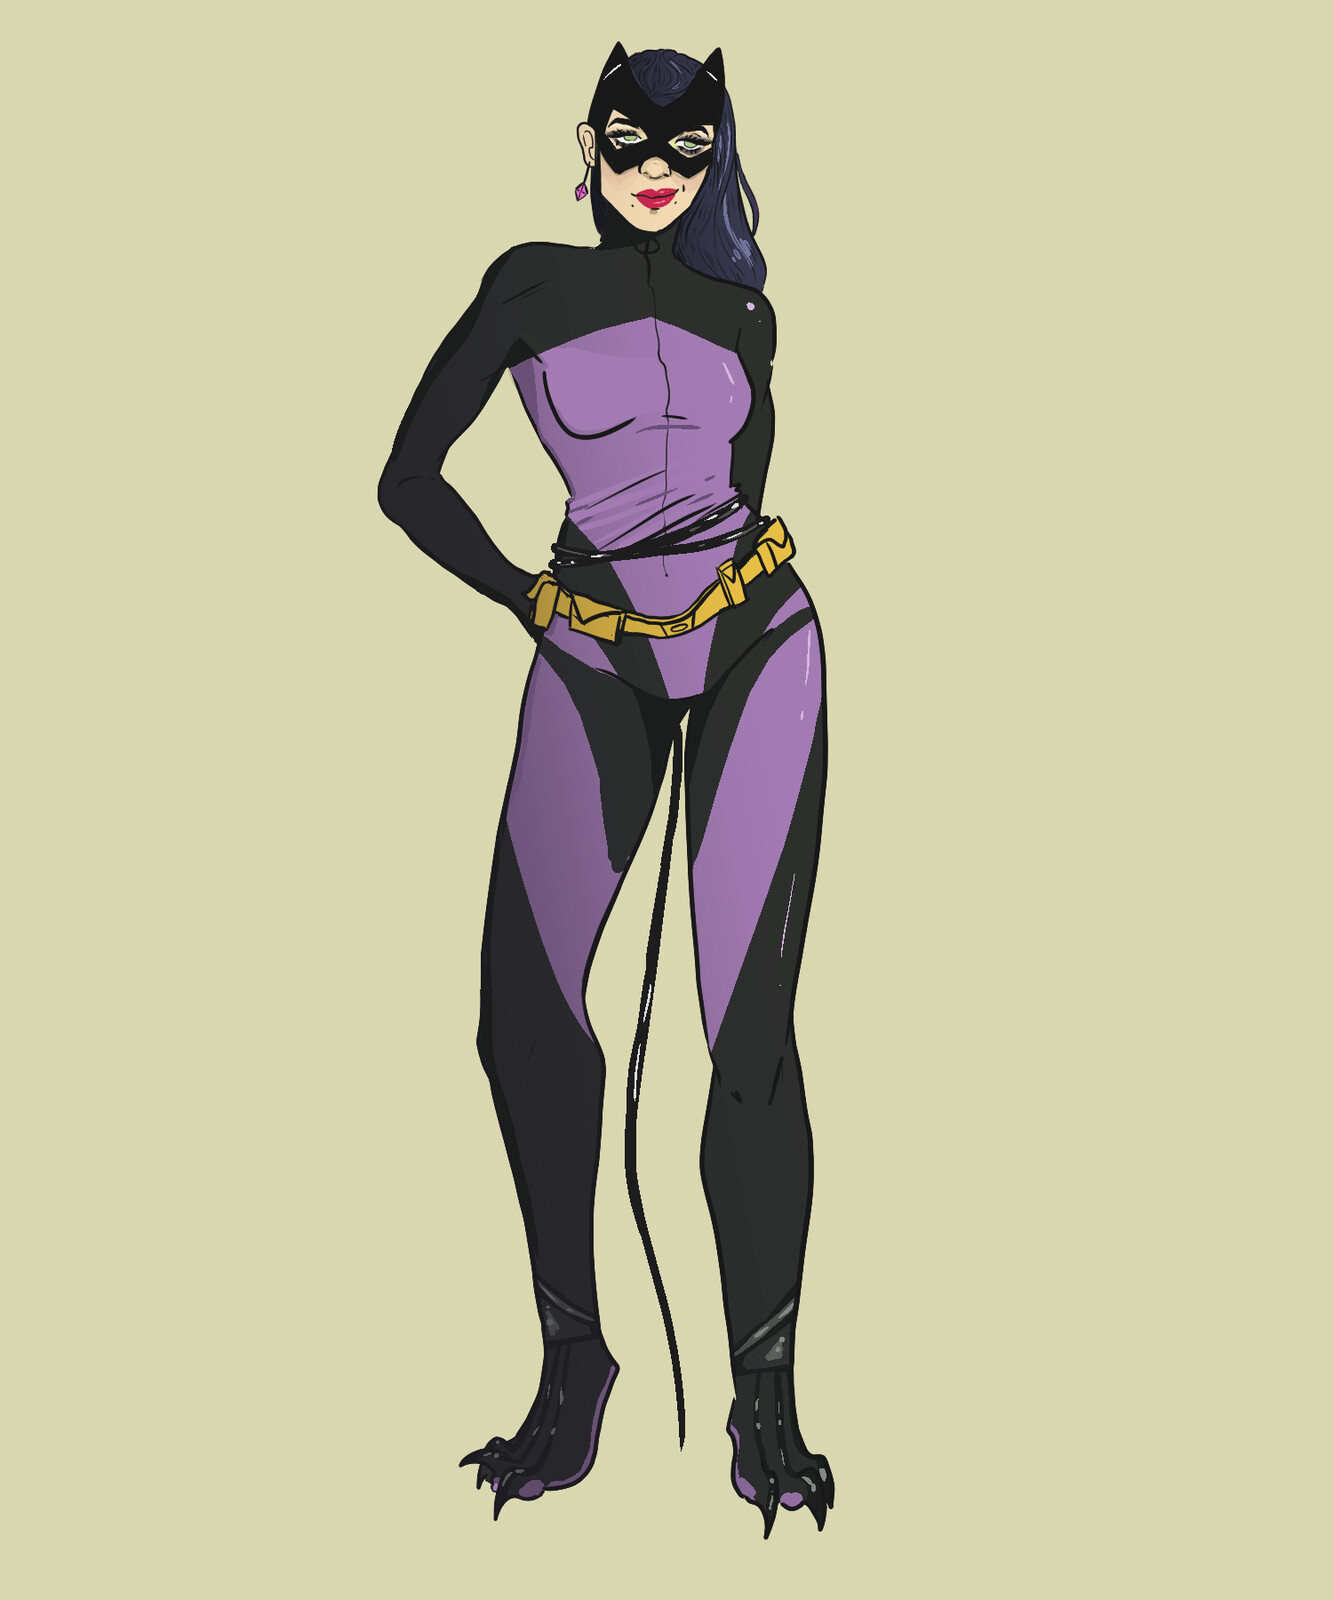 Wanted to play around with fusing catwoman's old design with her new